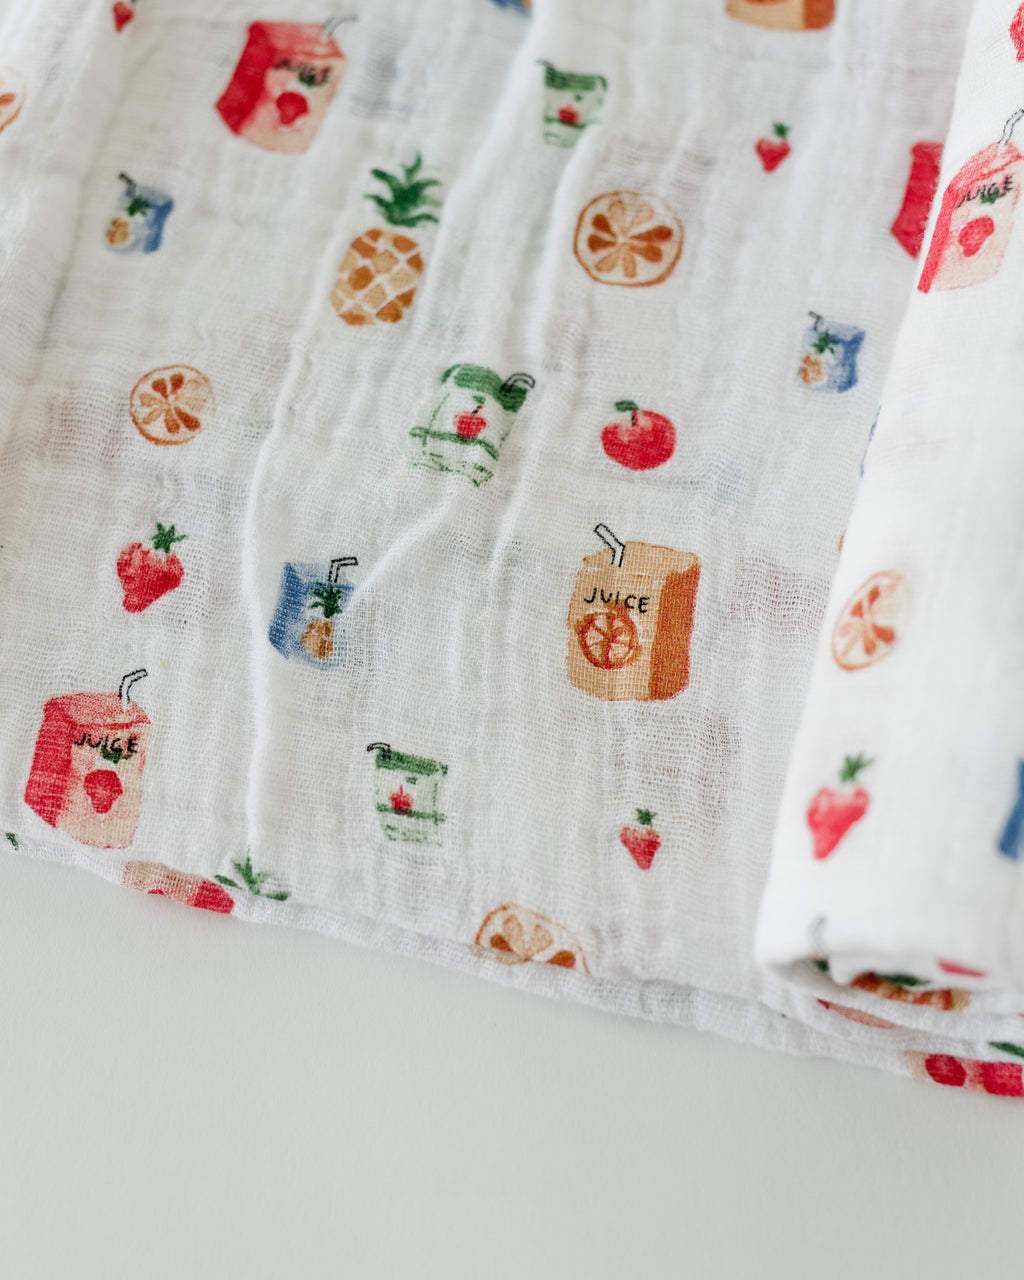 LU + The Boss Baby Cotton Swaddle - Juice Box